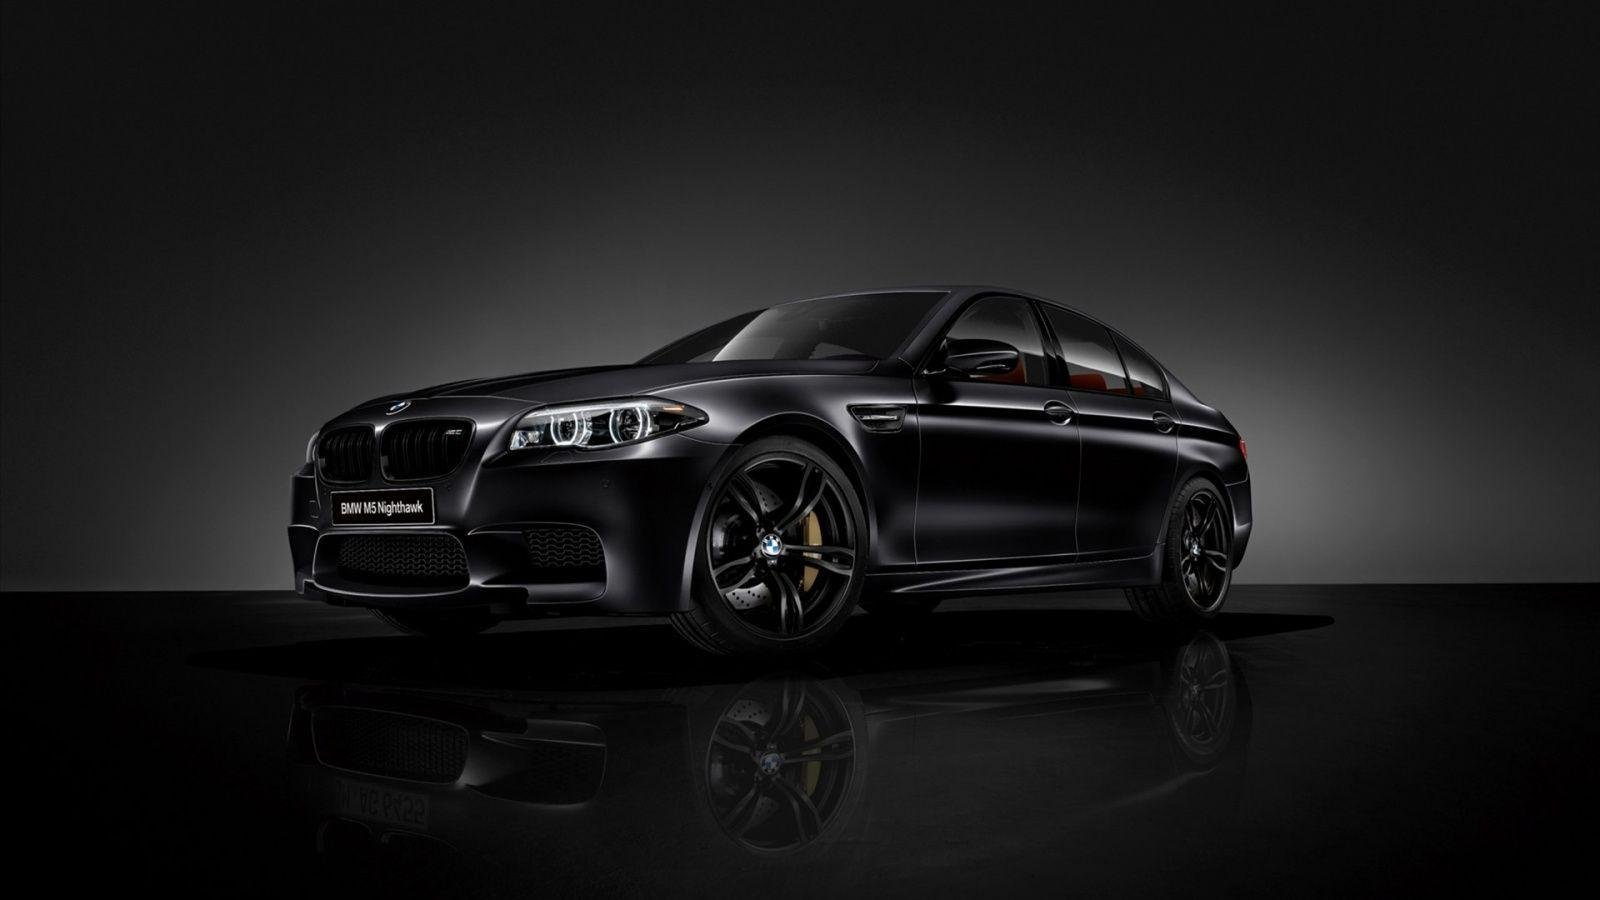 Latest Bmw M5 Wallpapers Wallpaper Cave Free Download